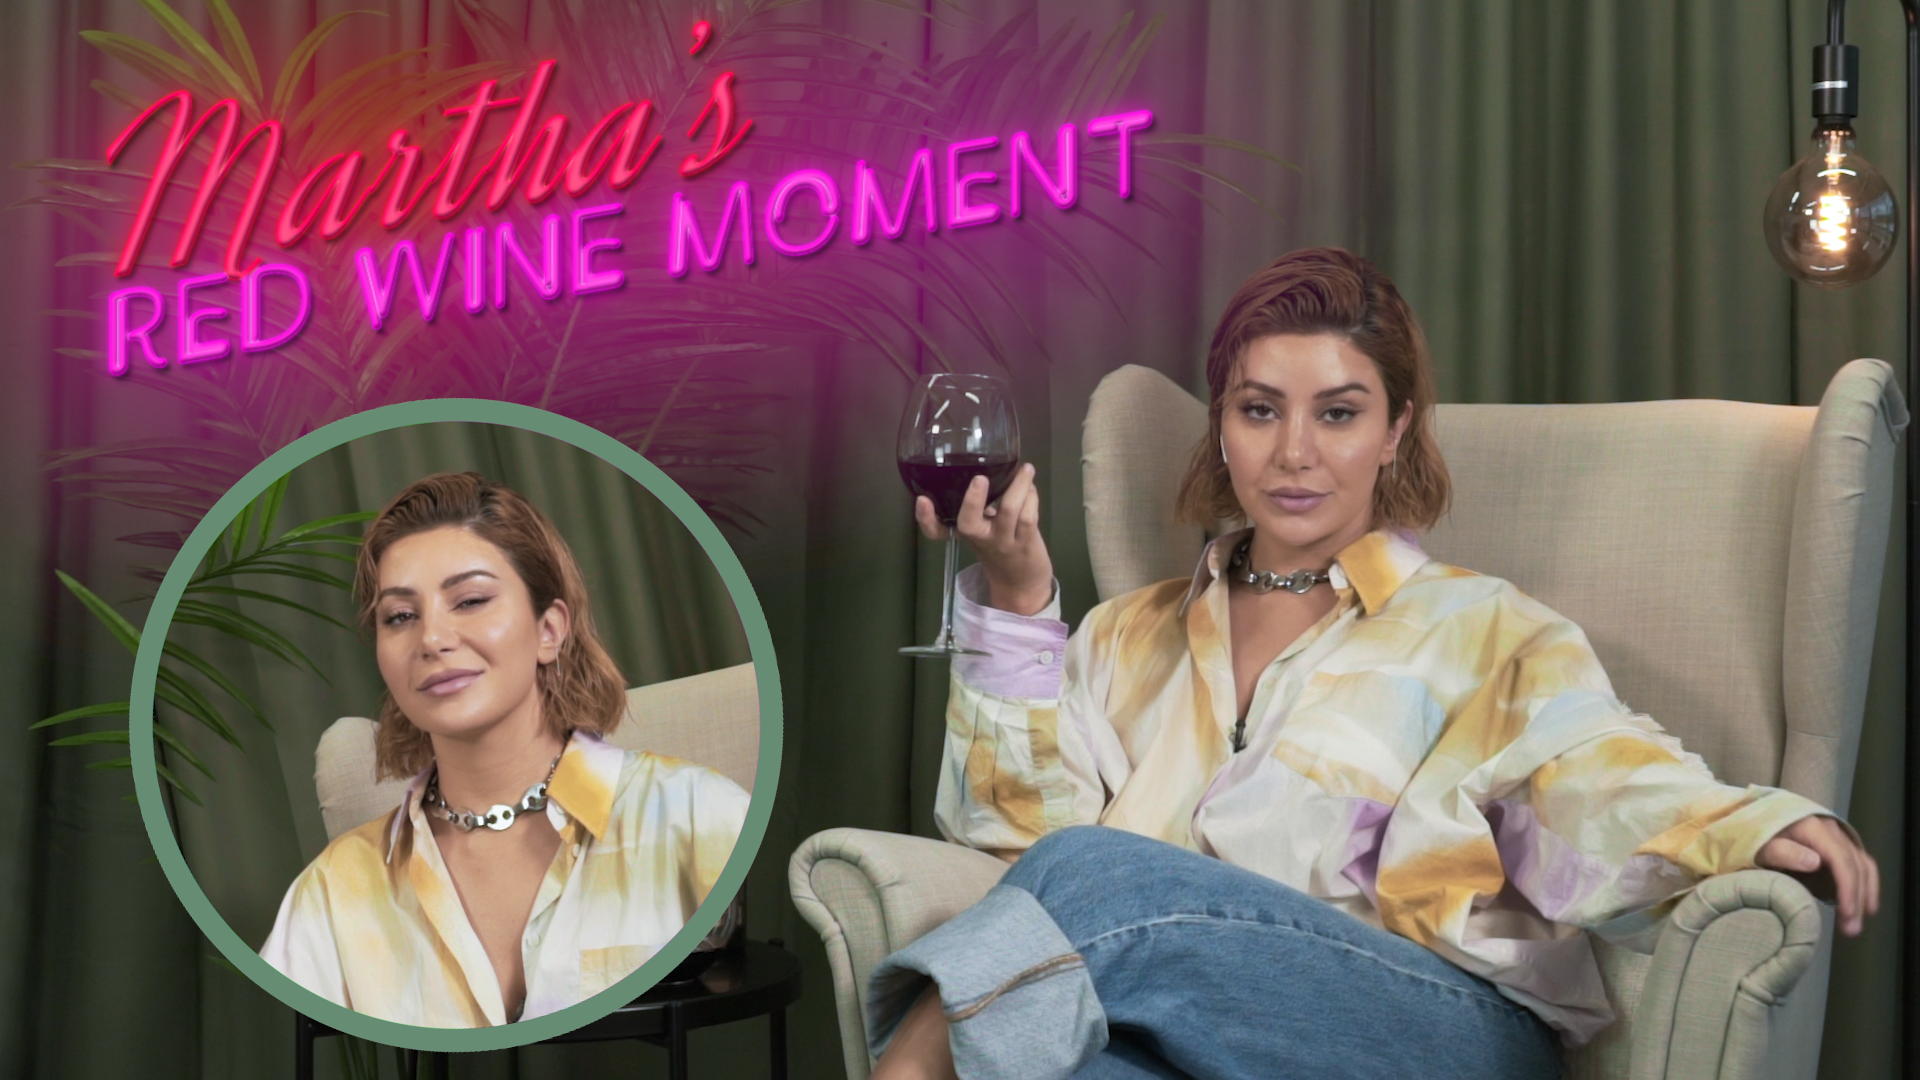 Martha's Red Wine Moment from Dinner Party #5, Season 8